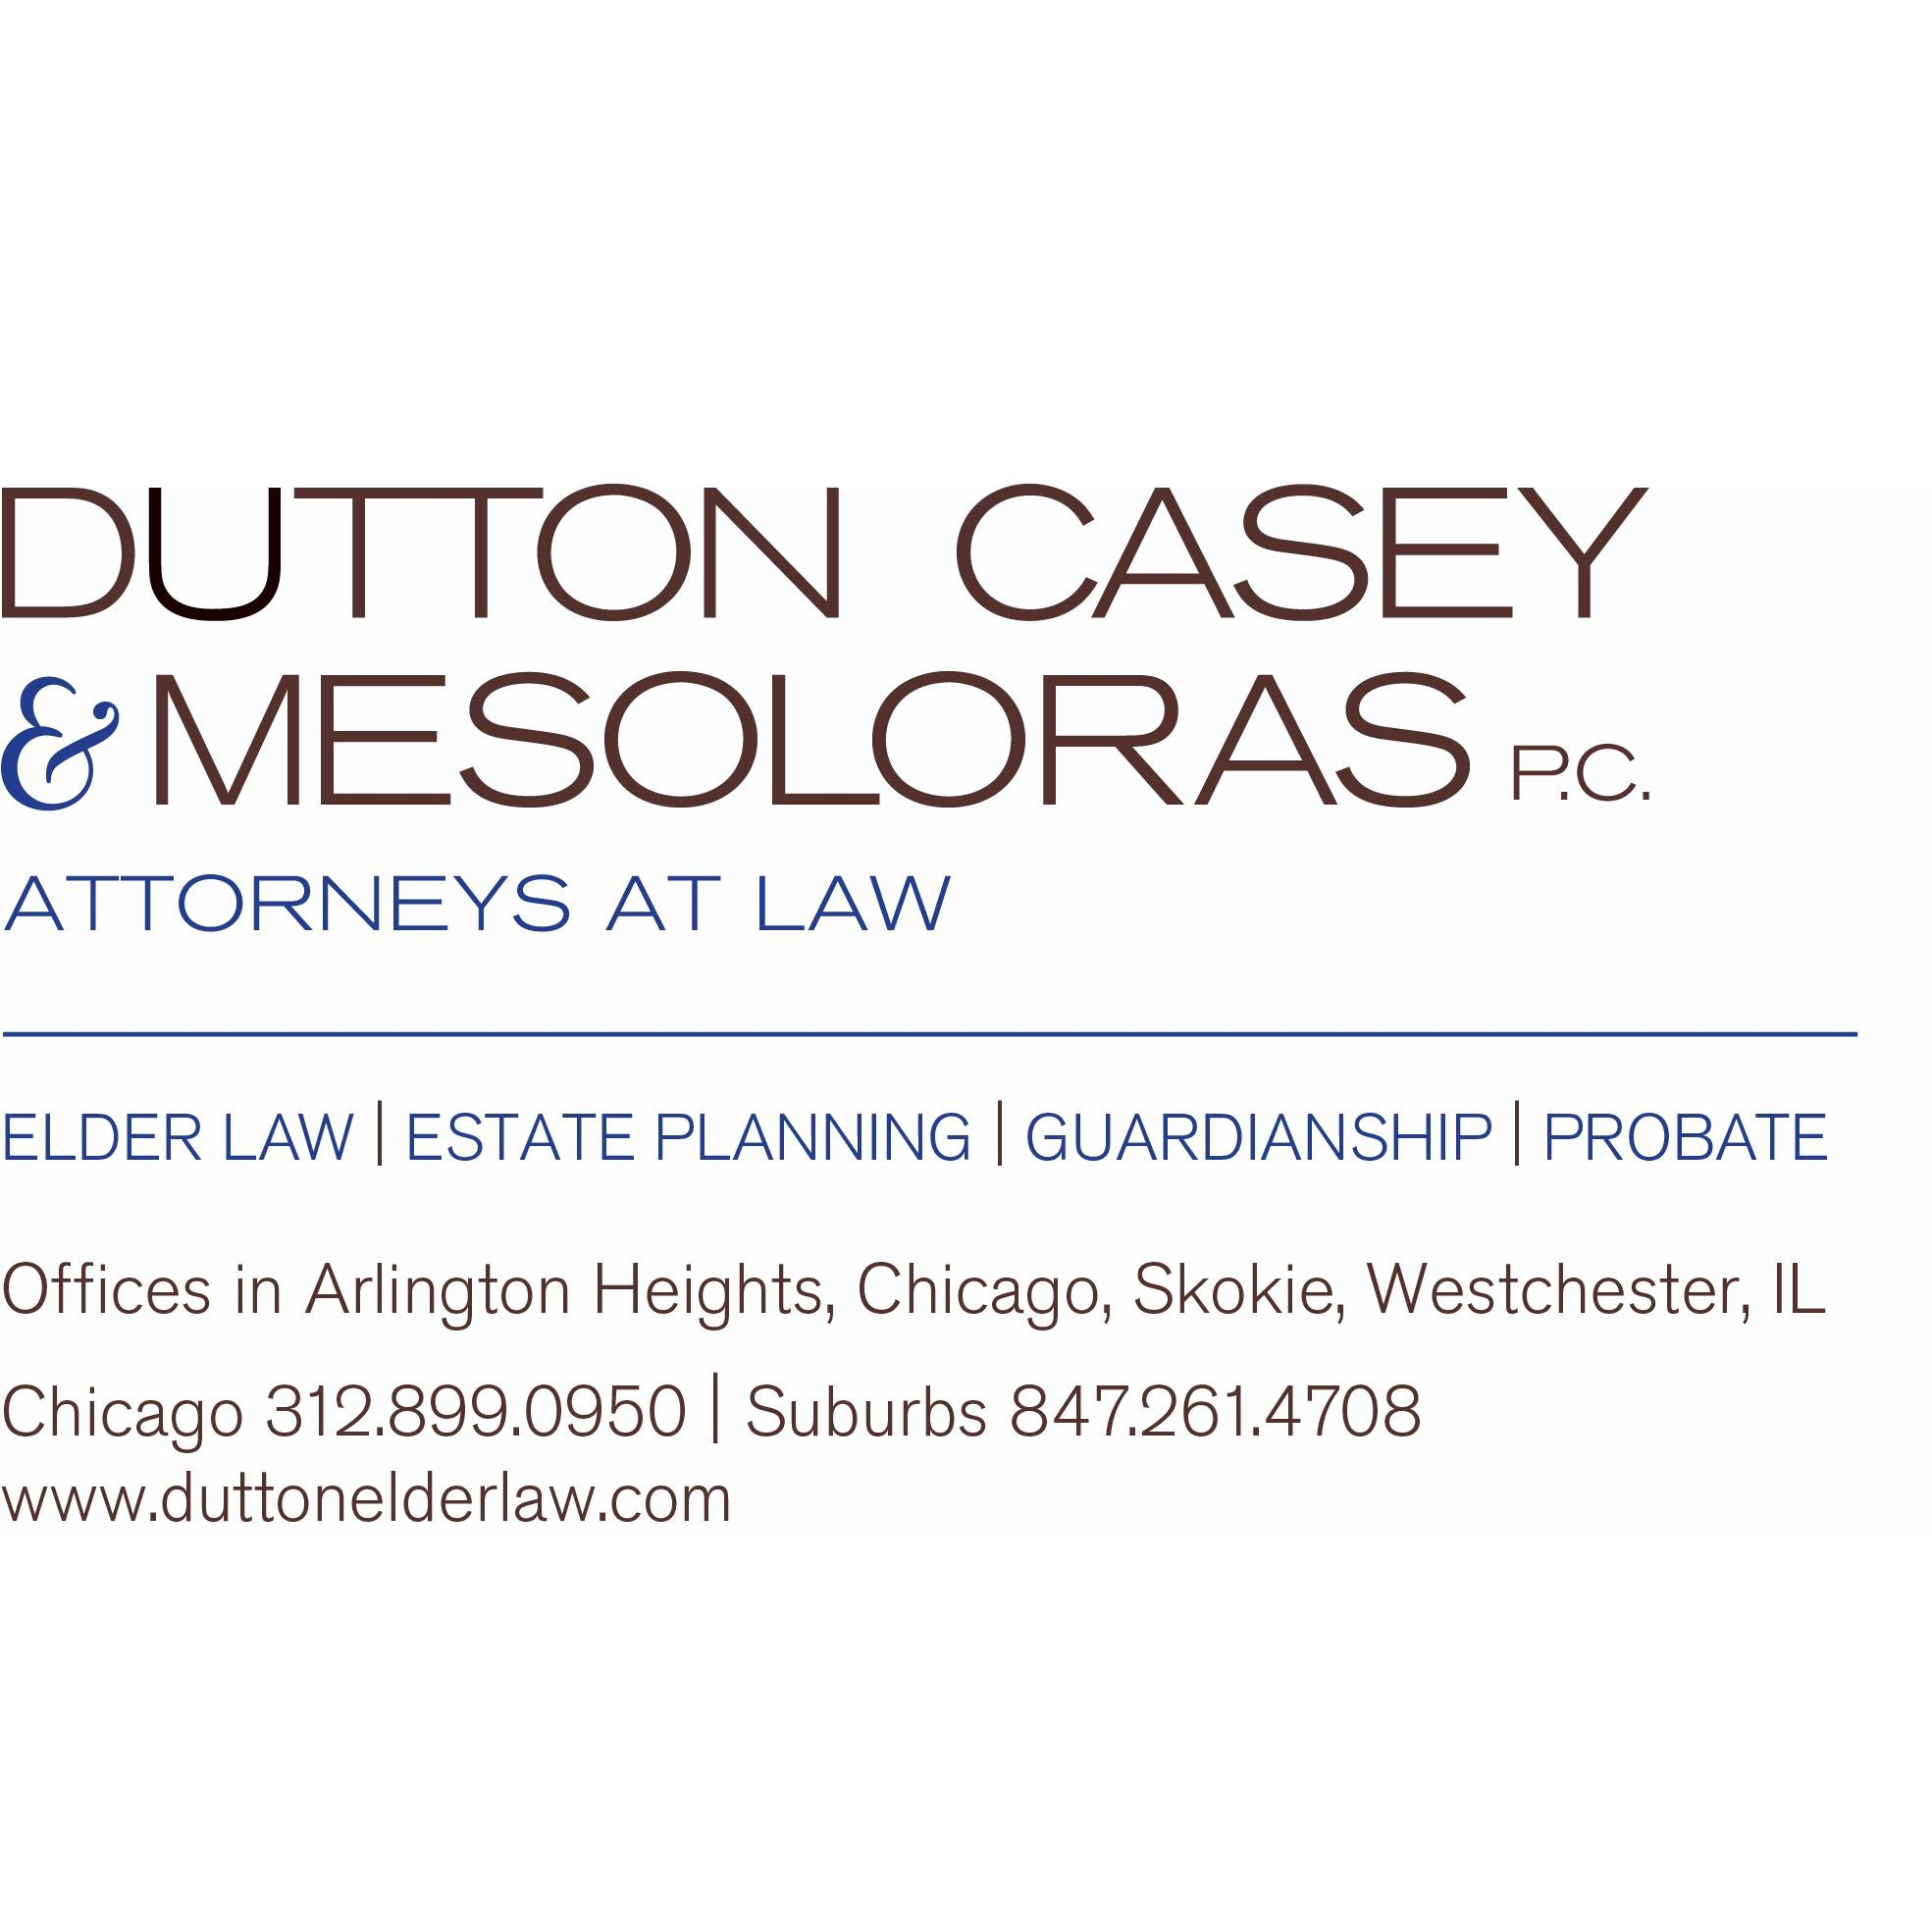 Dutton Casey & Mesoloras, Attorneys at Law - elder law, estate planning, guardianship, probate